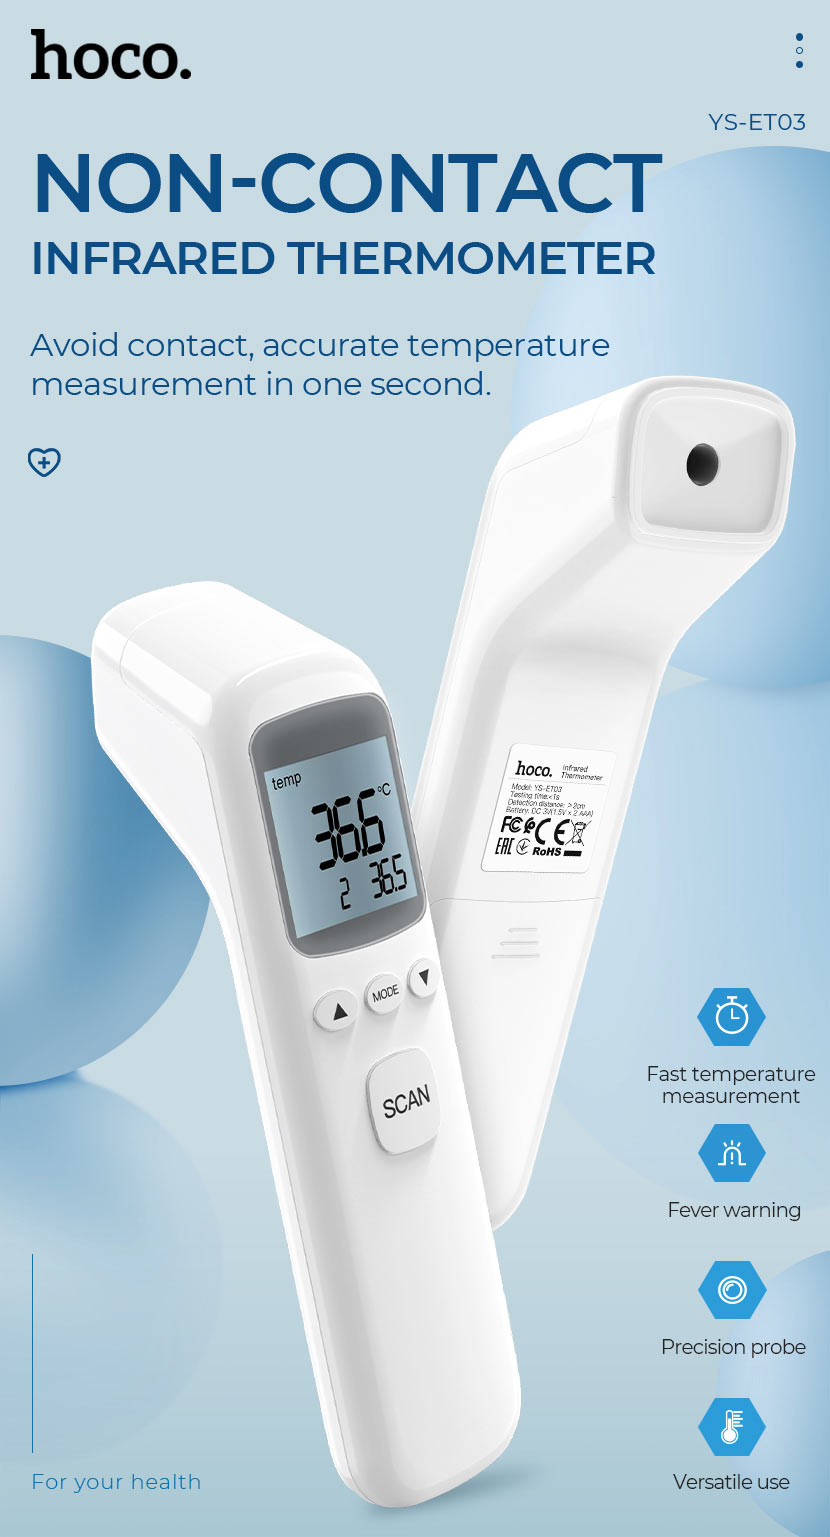 hoco news ys et03 non contact infrared thermometer in second en